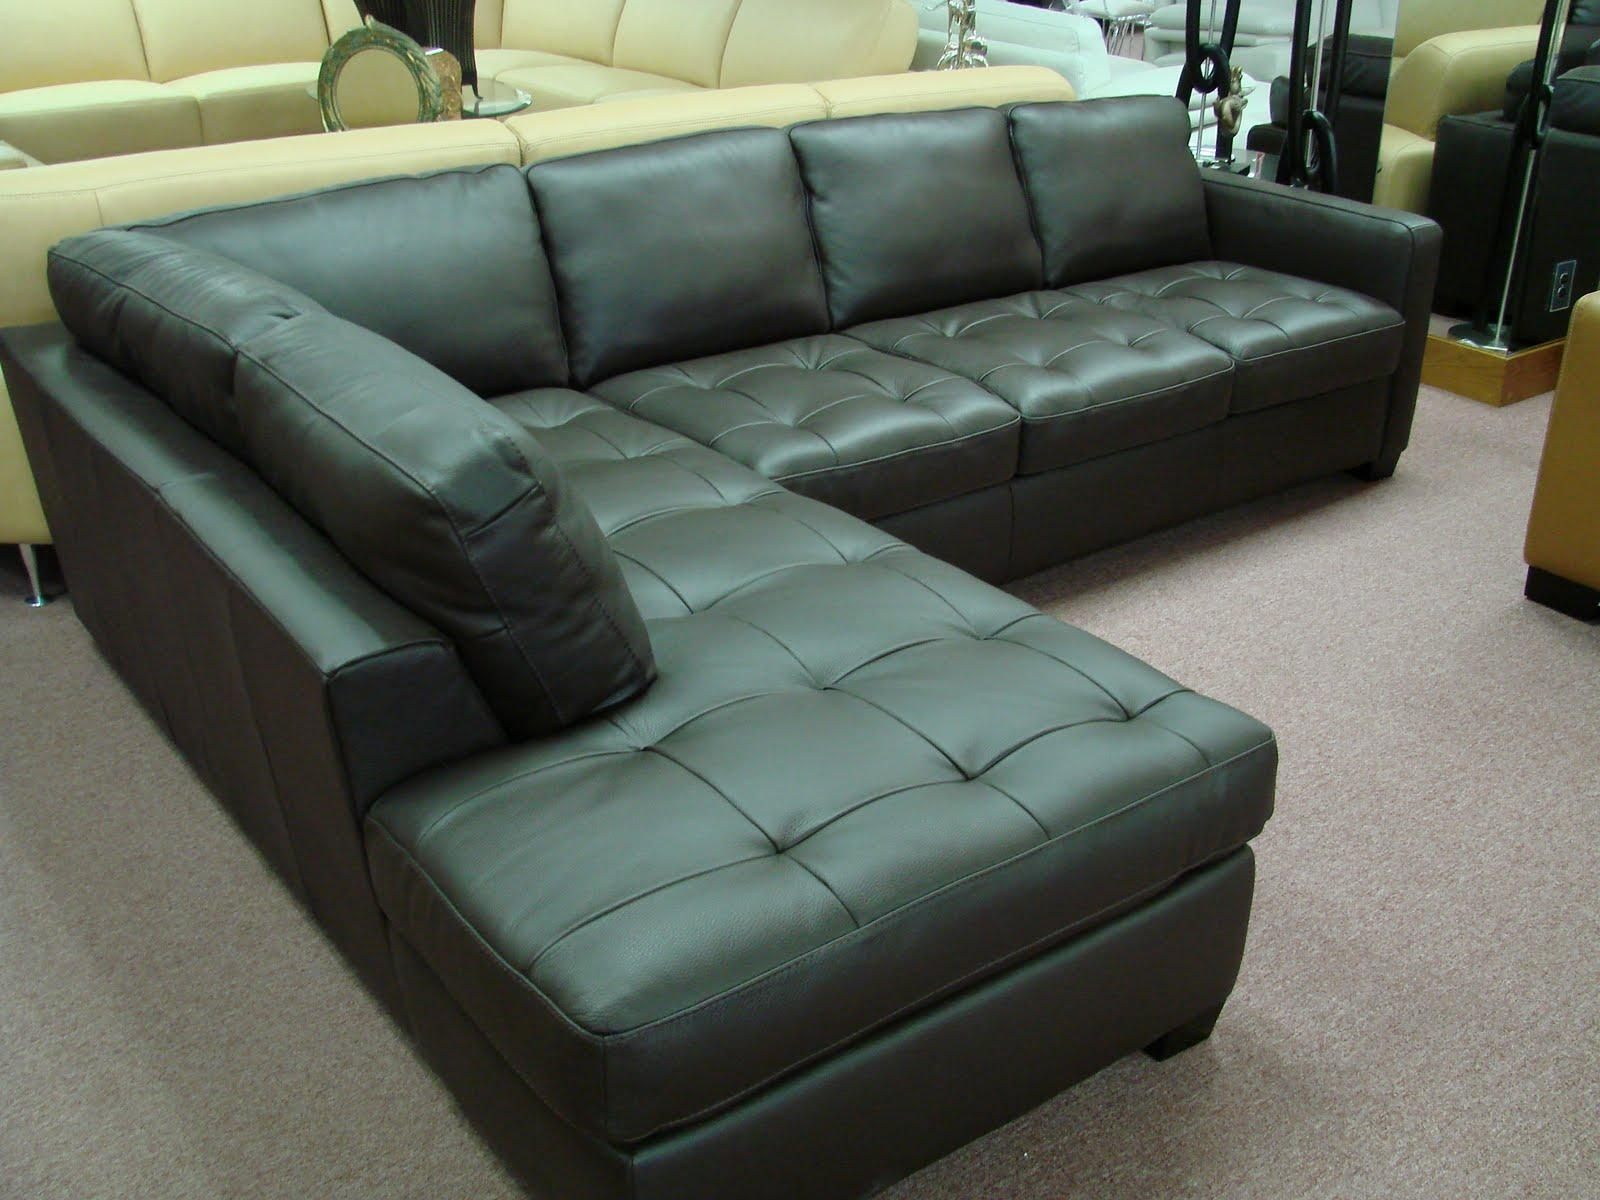 Sealy Leather Sofa With Ideas Photo 20362 | Kengire Pertaining To Sealy Leather Sofas (View 6 of 20)